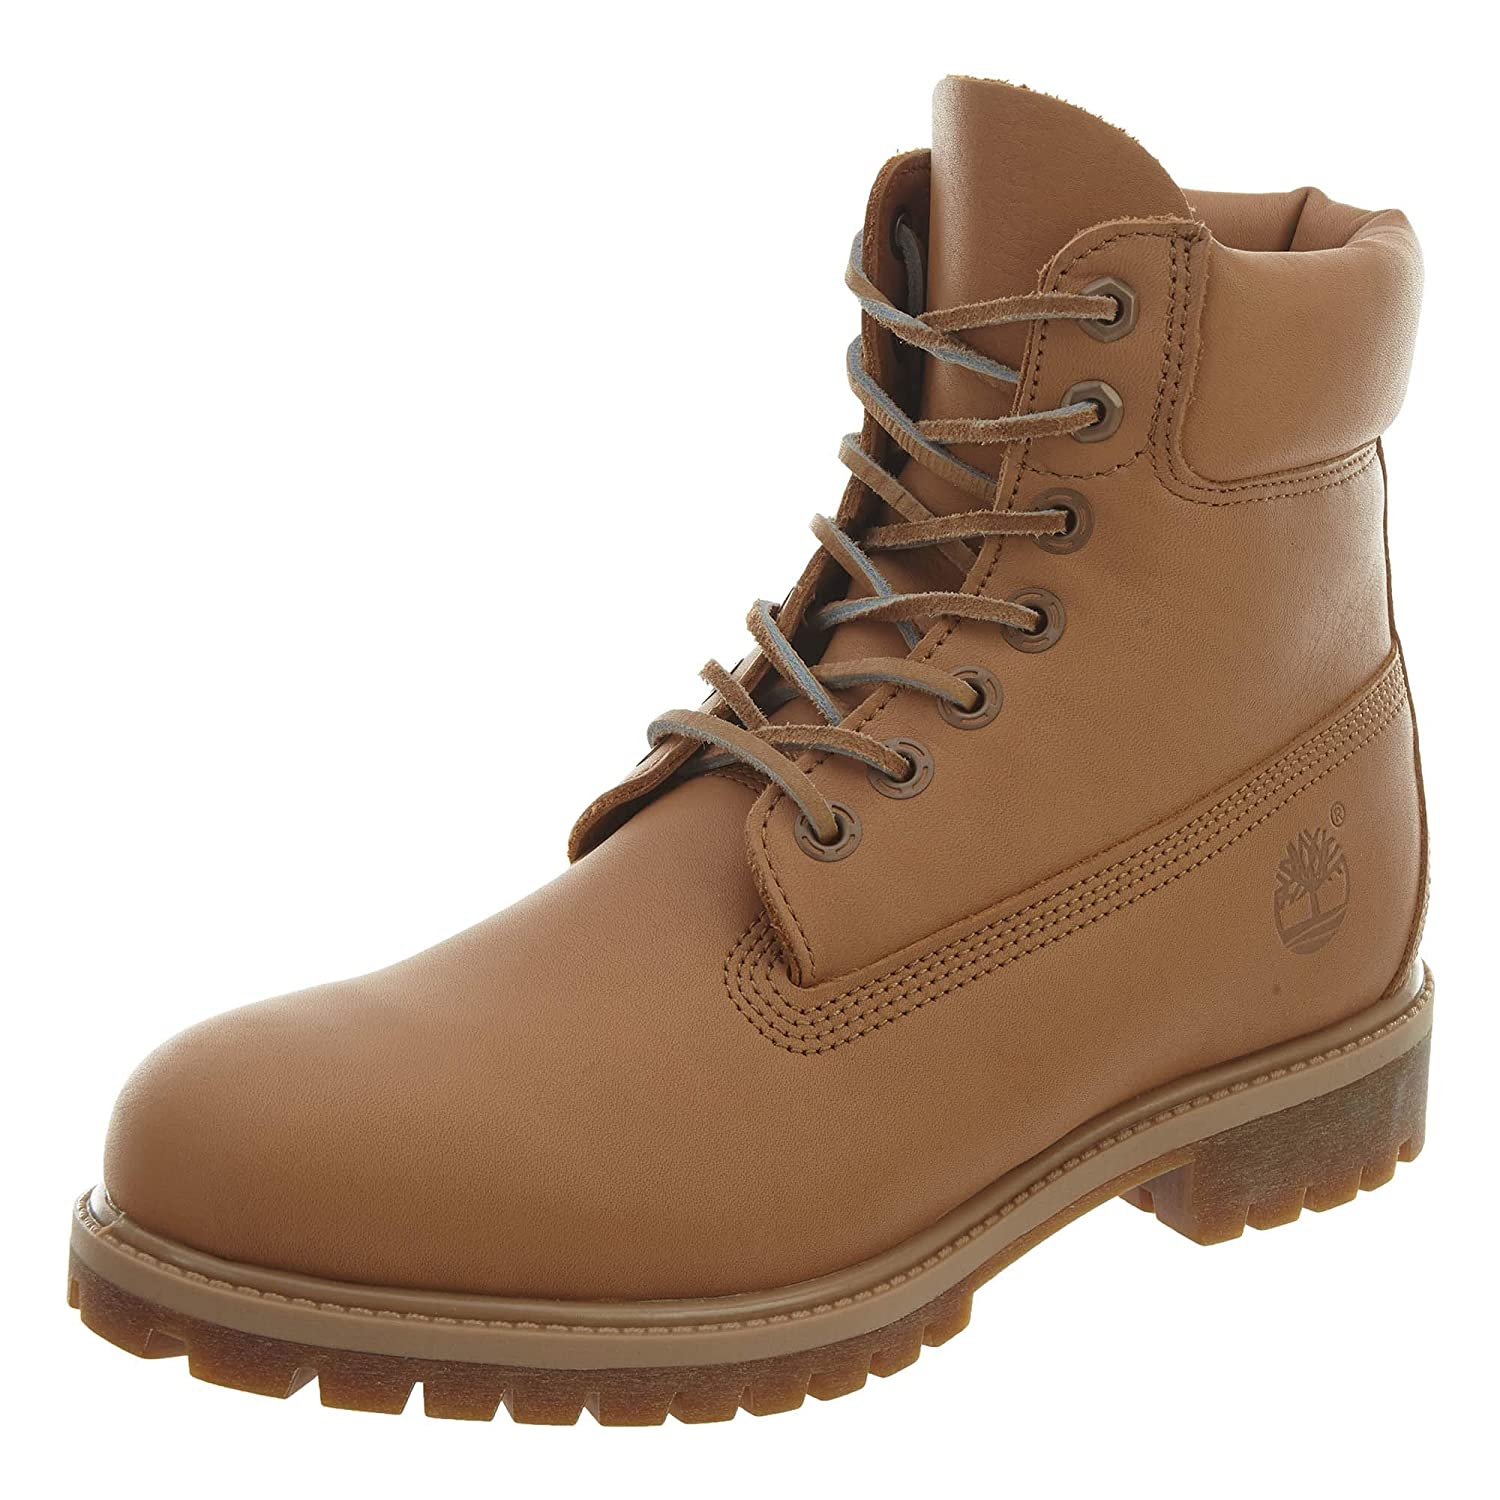 f8ac588a13a8 Timberland 6 inch Premium Waterproof Mens Boots Natural tb0a1jjb (9 D(M)  US)  Amazon.ca  Shoes   Handbags